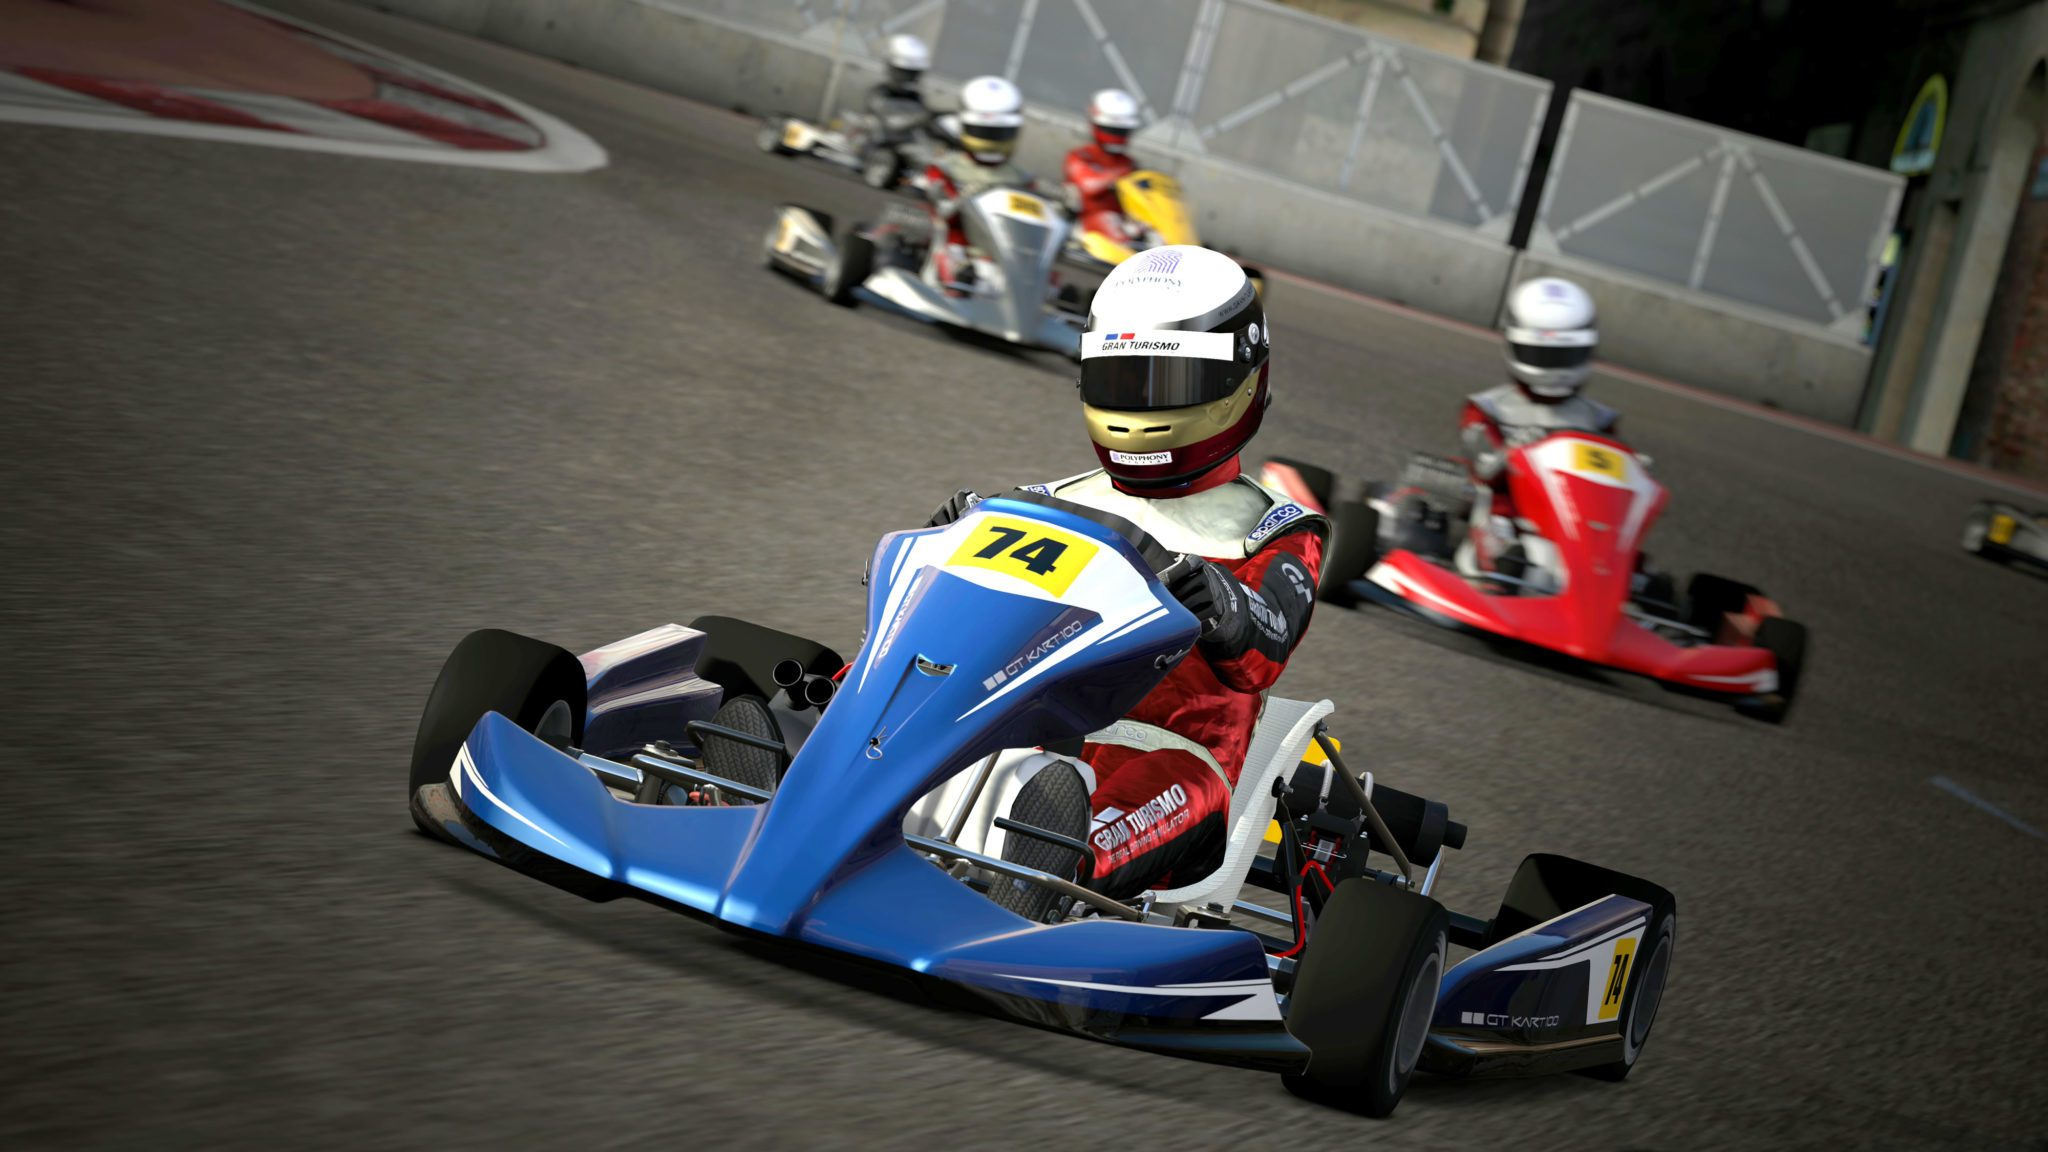 Gran Turismo 5 Karting Videos 18 Megapixel Screenshots